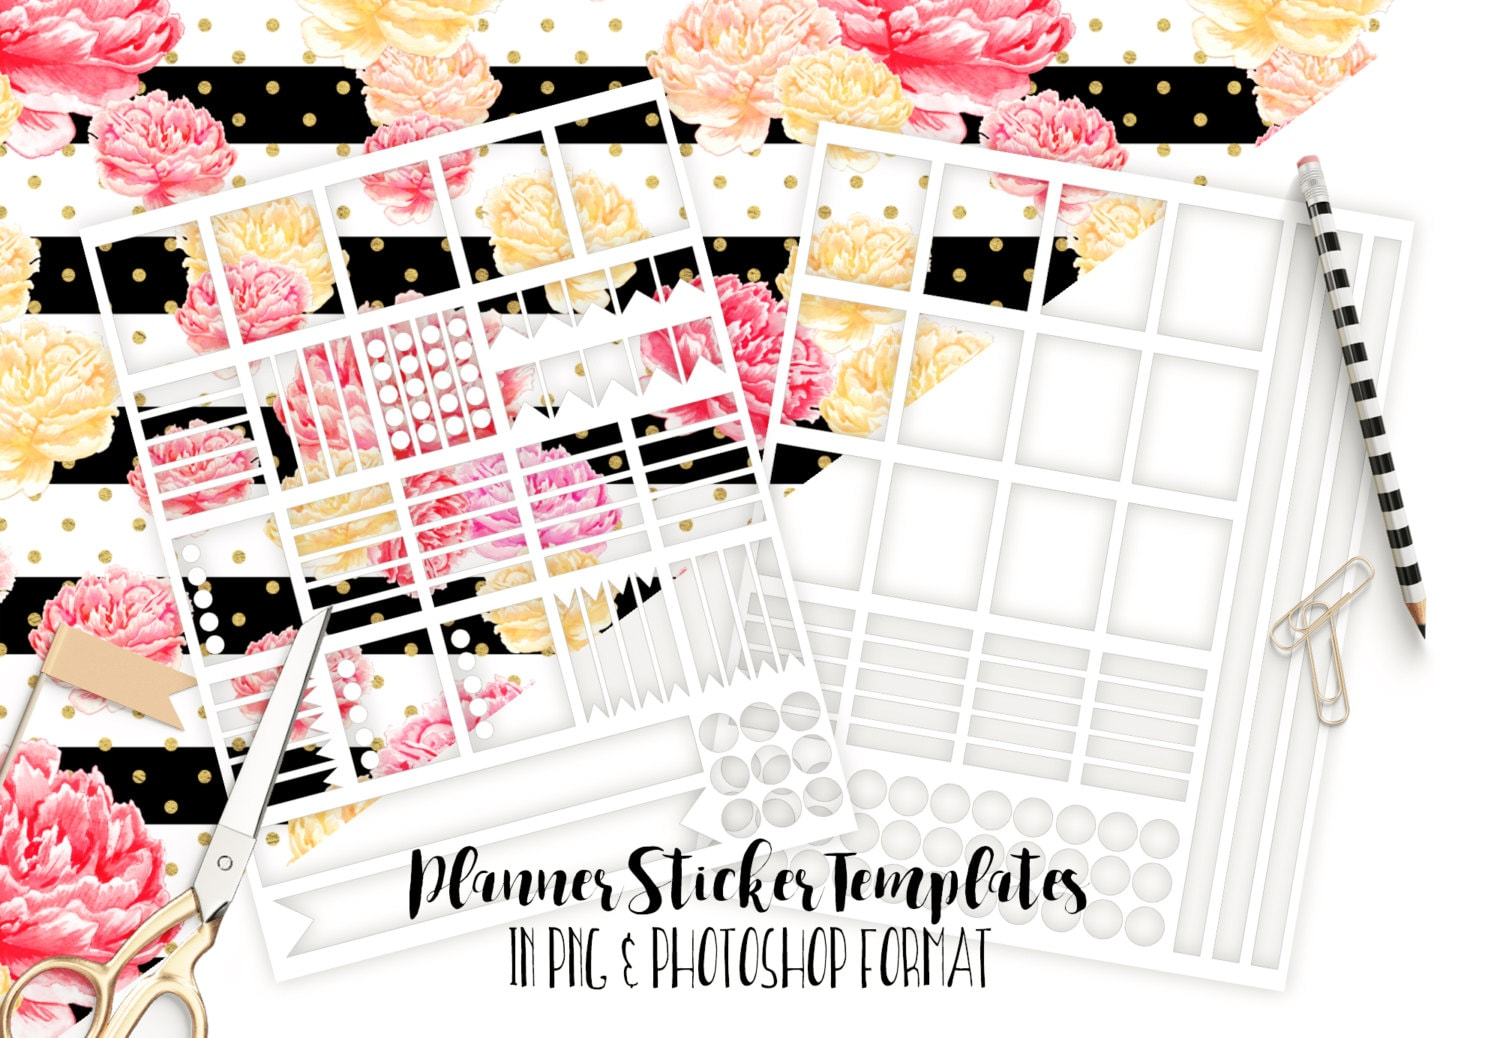 PLANNER STICKER TEMPLATES Personal Use Blank Diy Sticker Templates - Sticker layout template